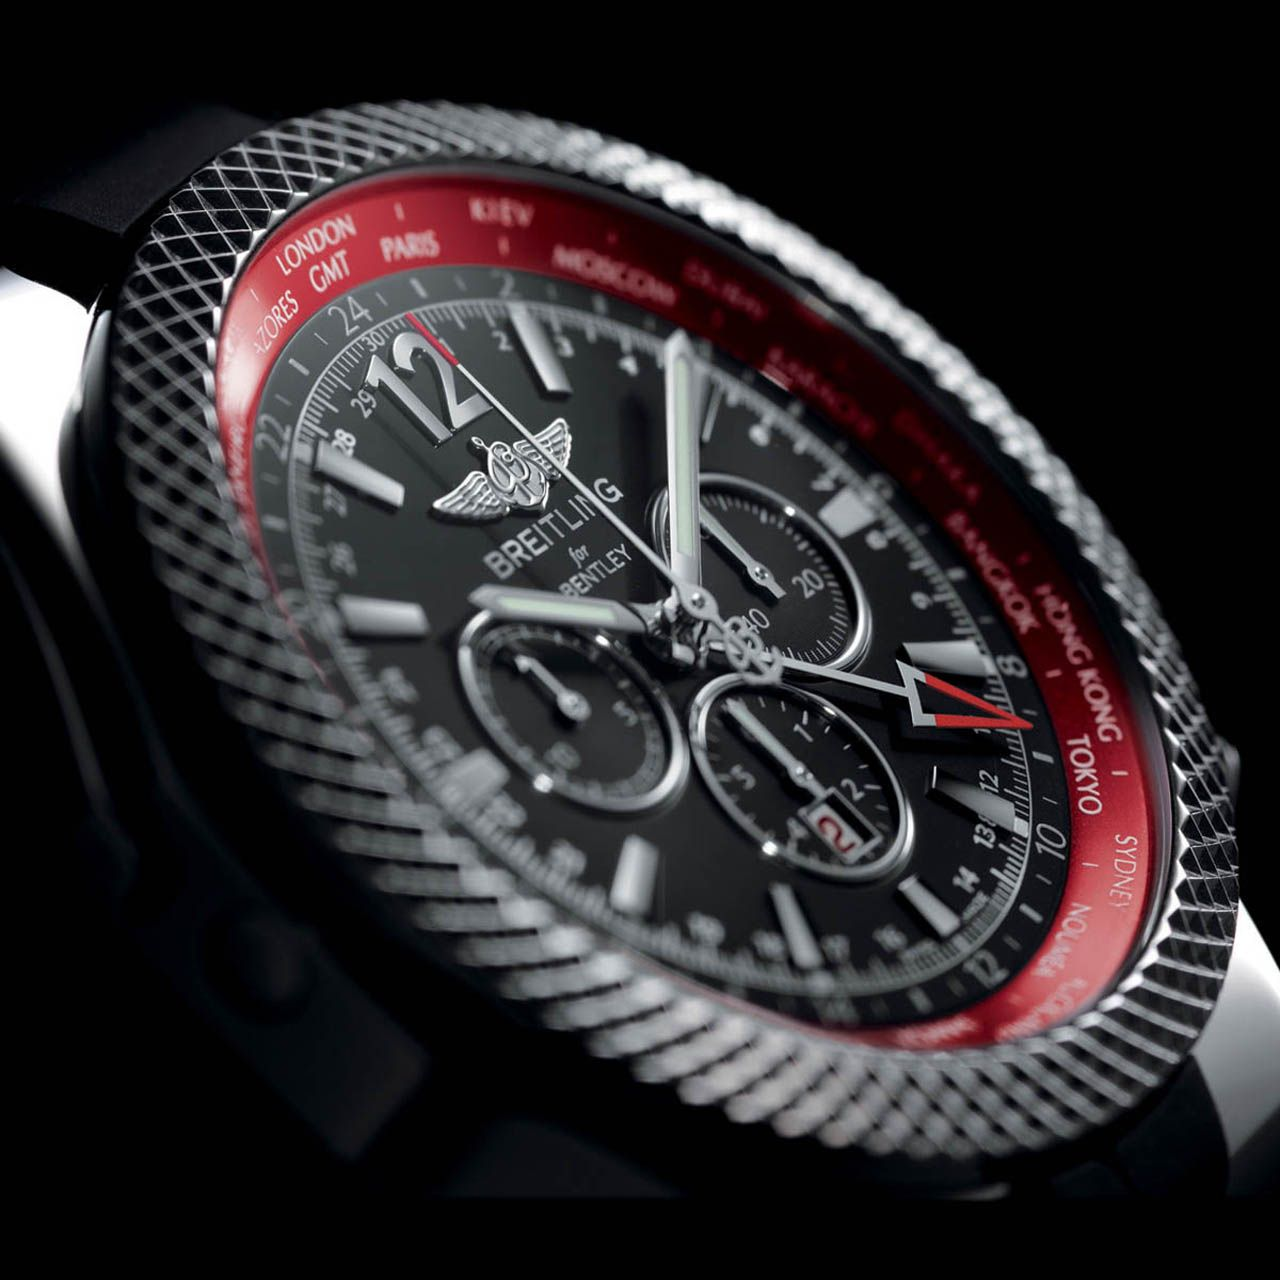 Breitling Bentley Continental Gt V8 Inspired Watch